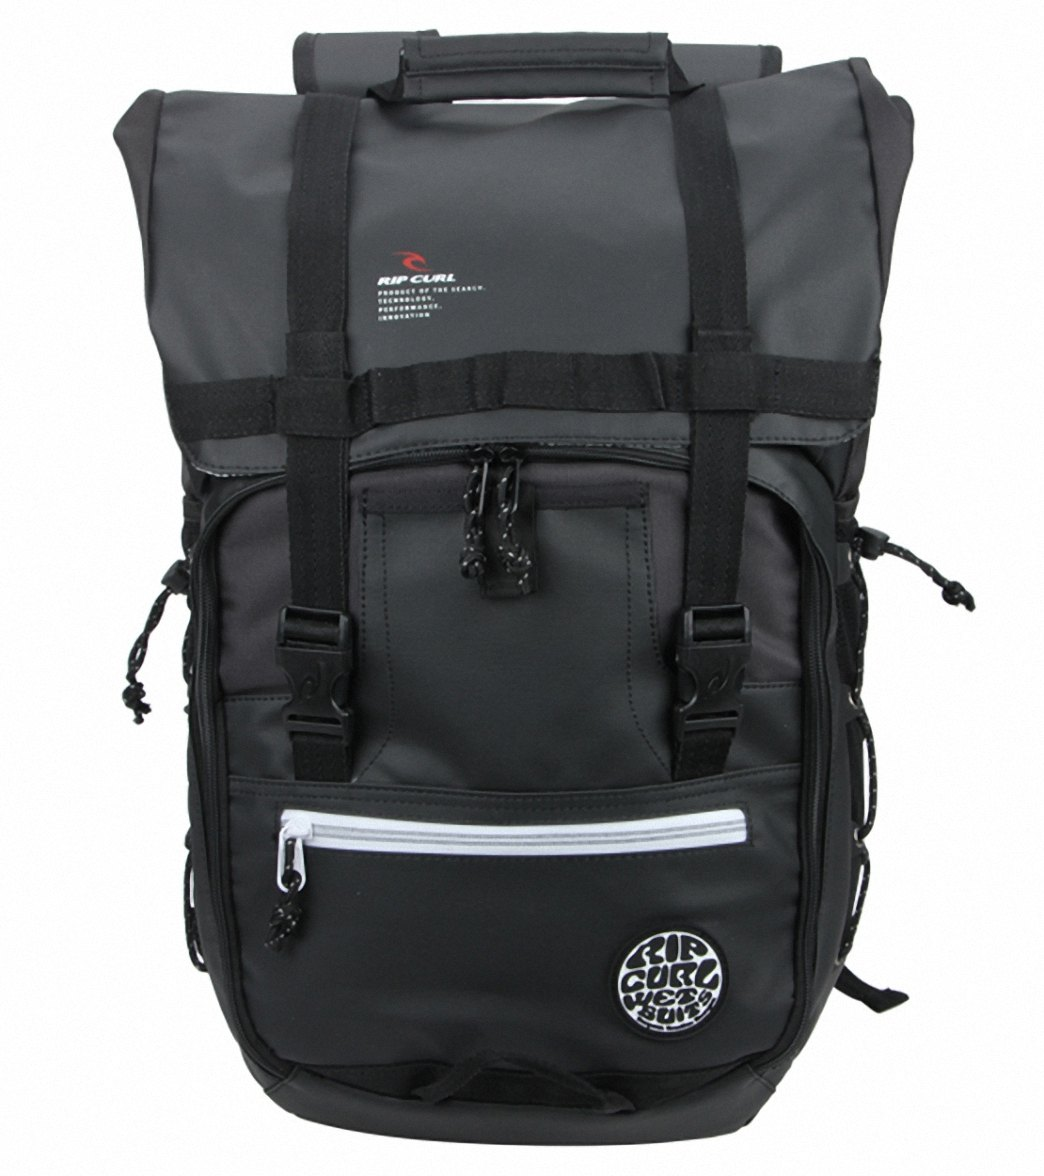 23fea12eb66e Rip Curl Wetsuit Series Search Backpack at SwimOutlet.com - Free Shipping